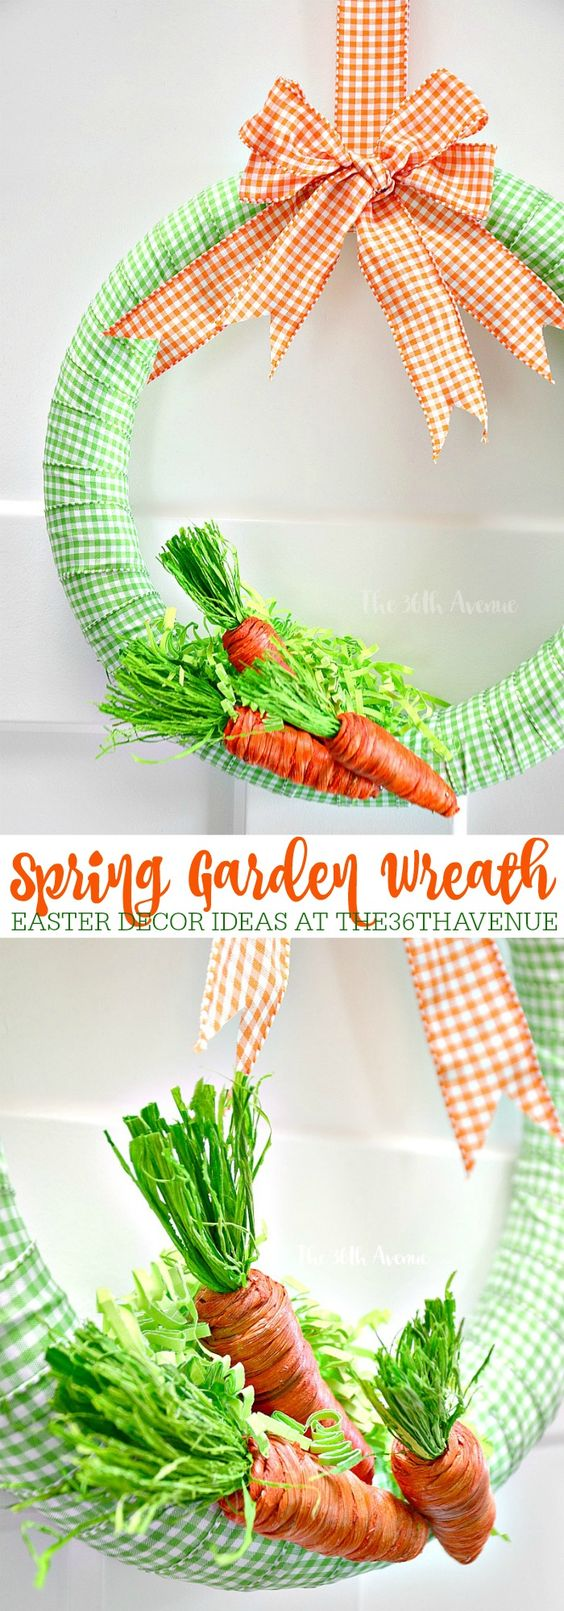 This adorable DIY Spring Garden Wreath via The 36th Avenue will make your Easter Decor fun and festive!